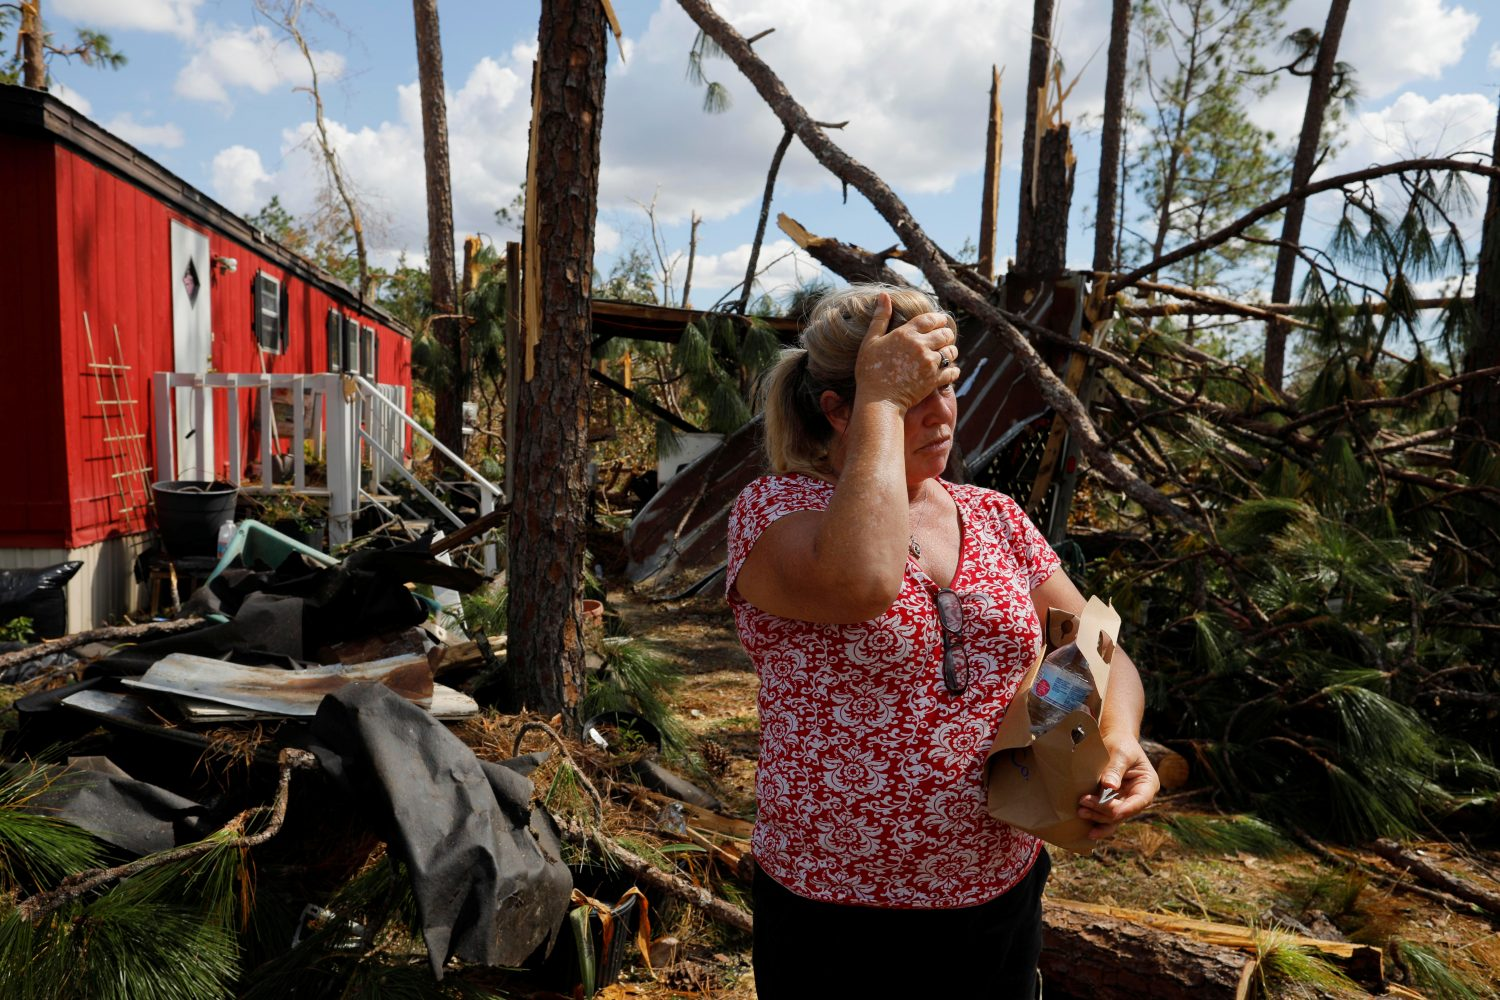 Hurricane Michael survivor Yvette Beasley stands in her front yard during a wellbeing check by a 50 Star Search and Rescue team in Fountain, Florida, U.S., October 17, 2018. REUTERS/Brian Snyder